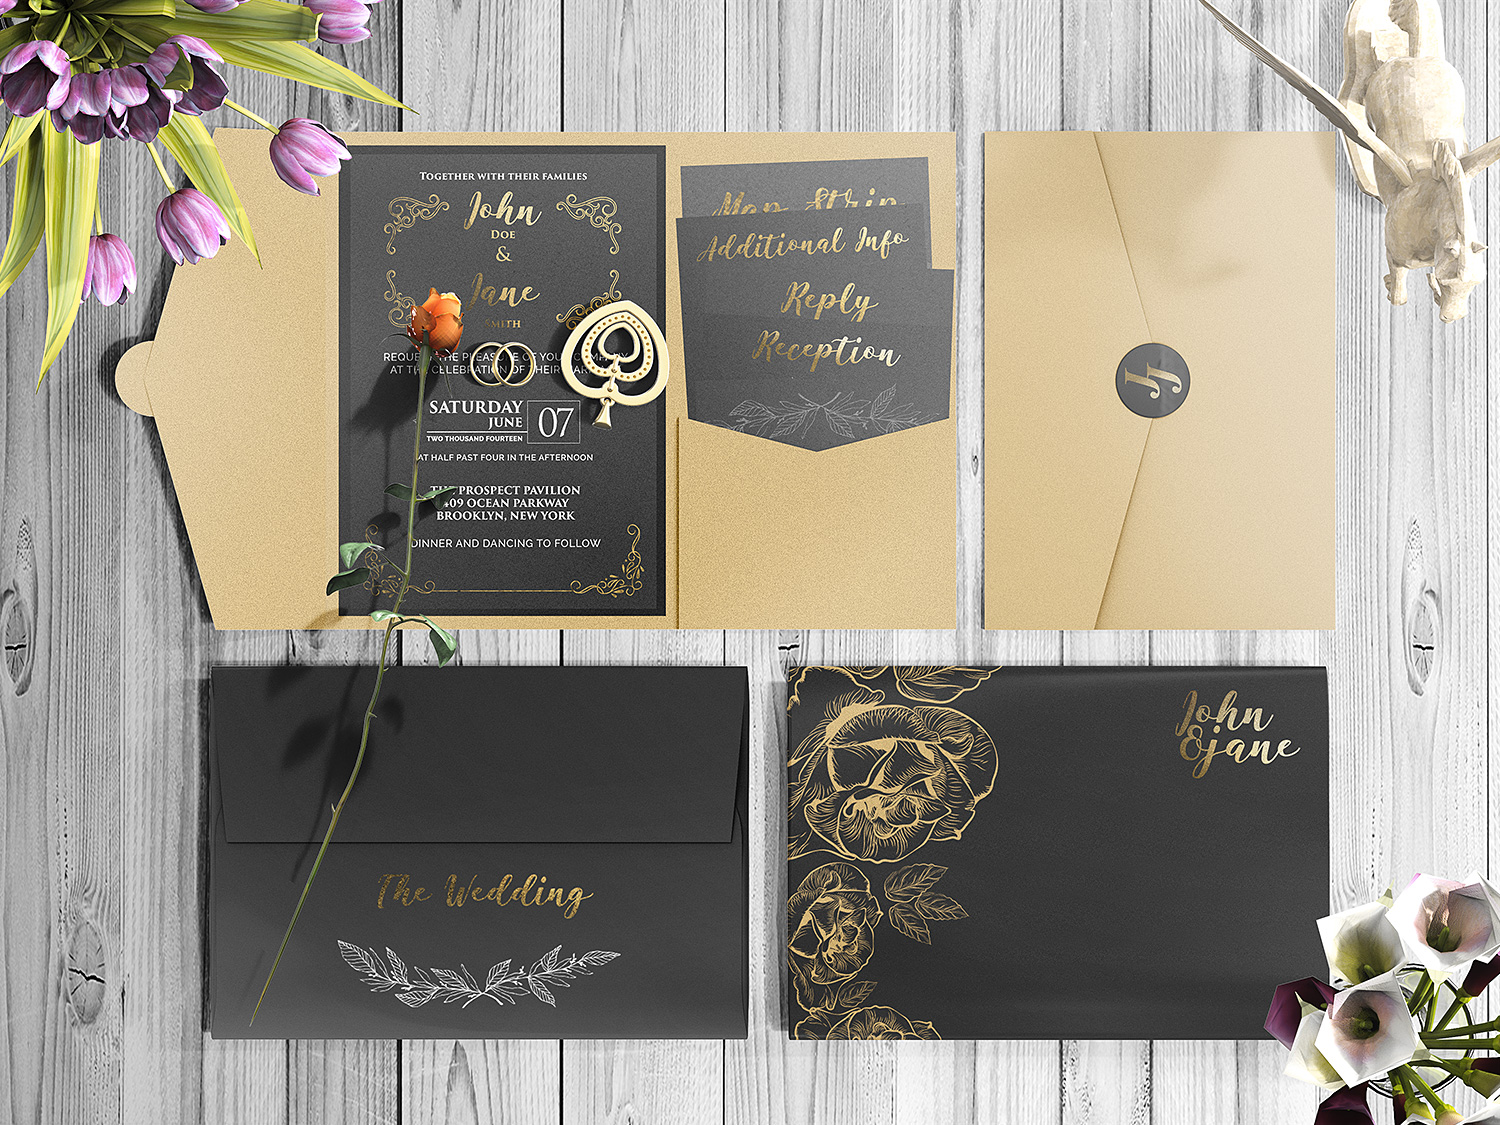 Wedding-Invitation-Mockup-02